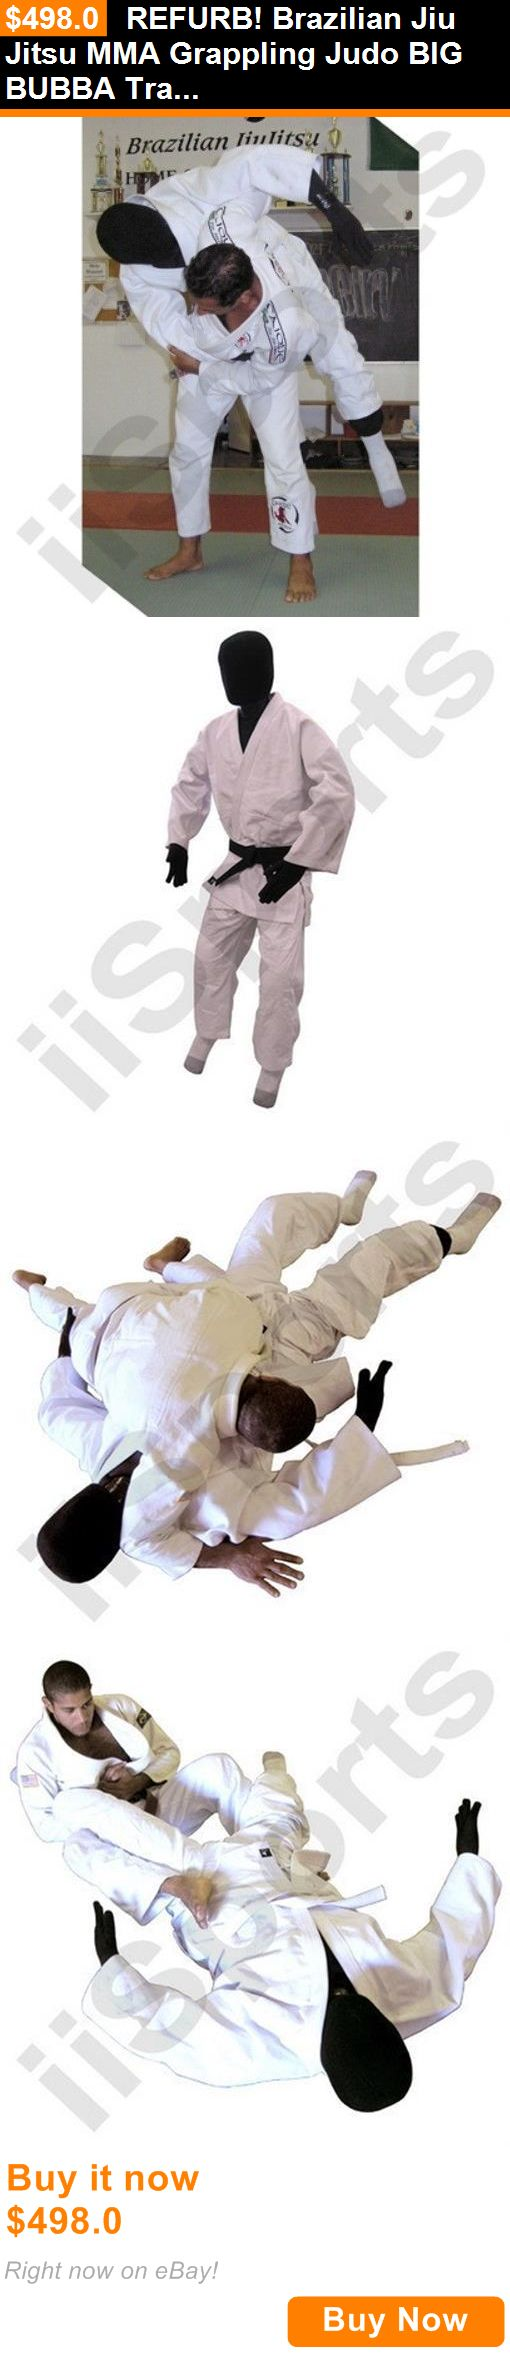 Dummies 179786: Refurb! Brazilian Jiu Jitsu Mma Grappling Judo Big Bubba Training Man Dummy Bag BUY IT NOW ONLY: $498.0